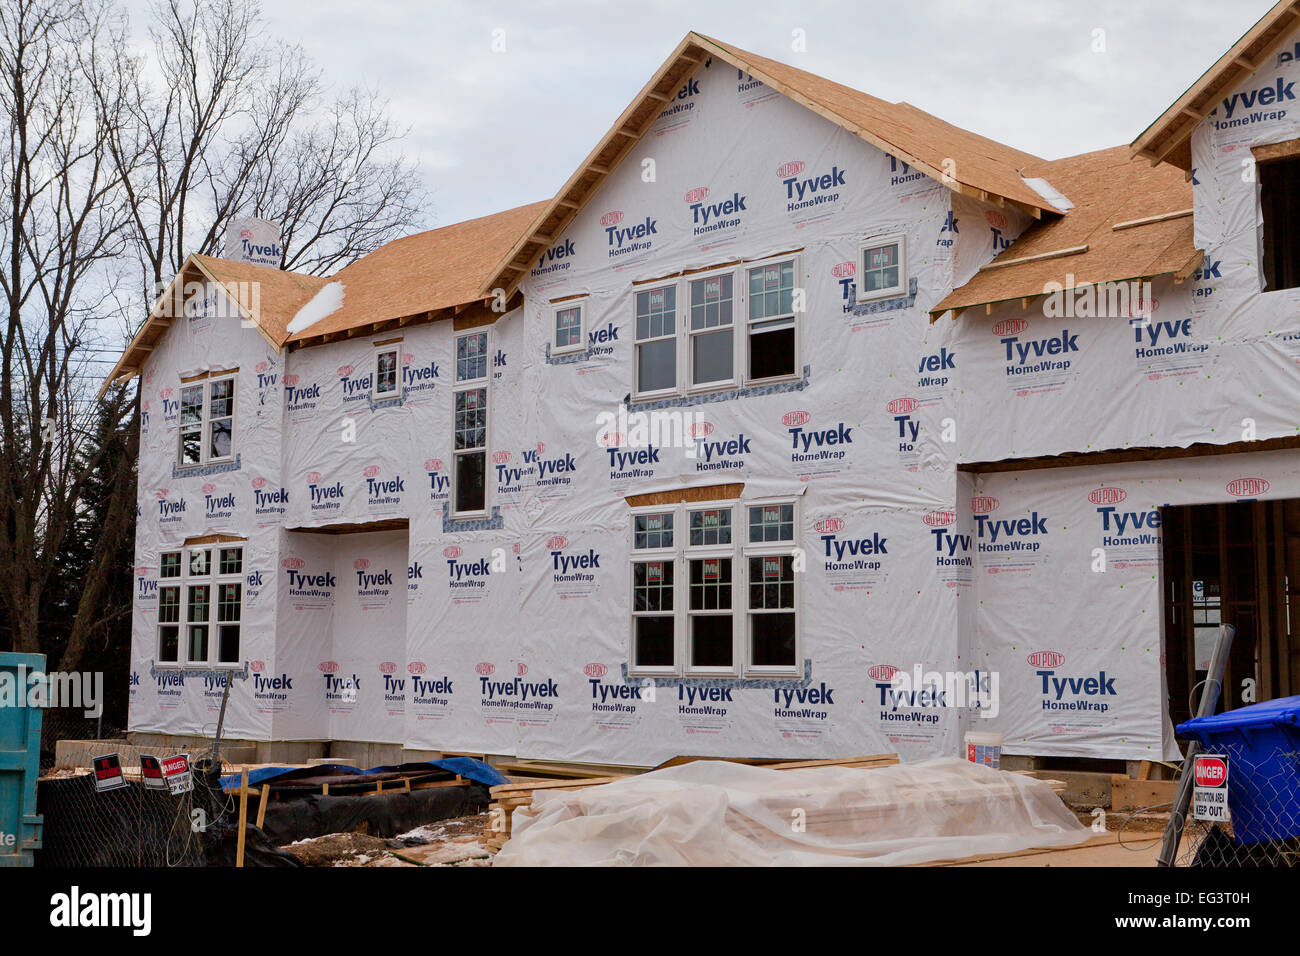 Tyvek stock photos tyvek stock images alamy for Sheathing house wrap